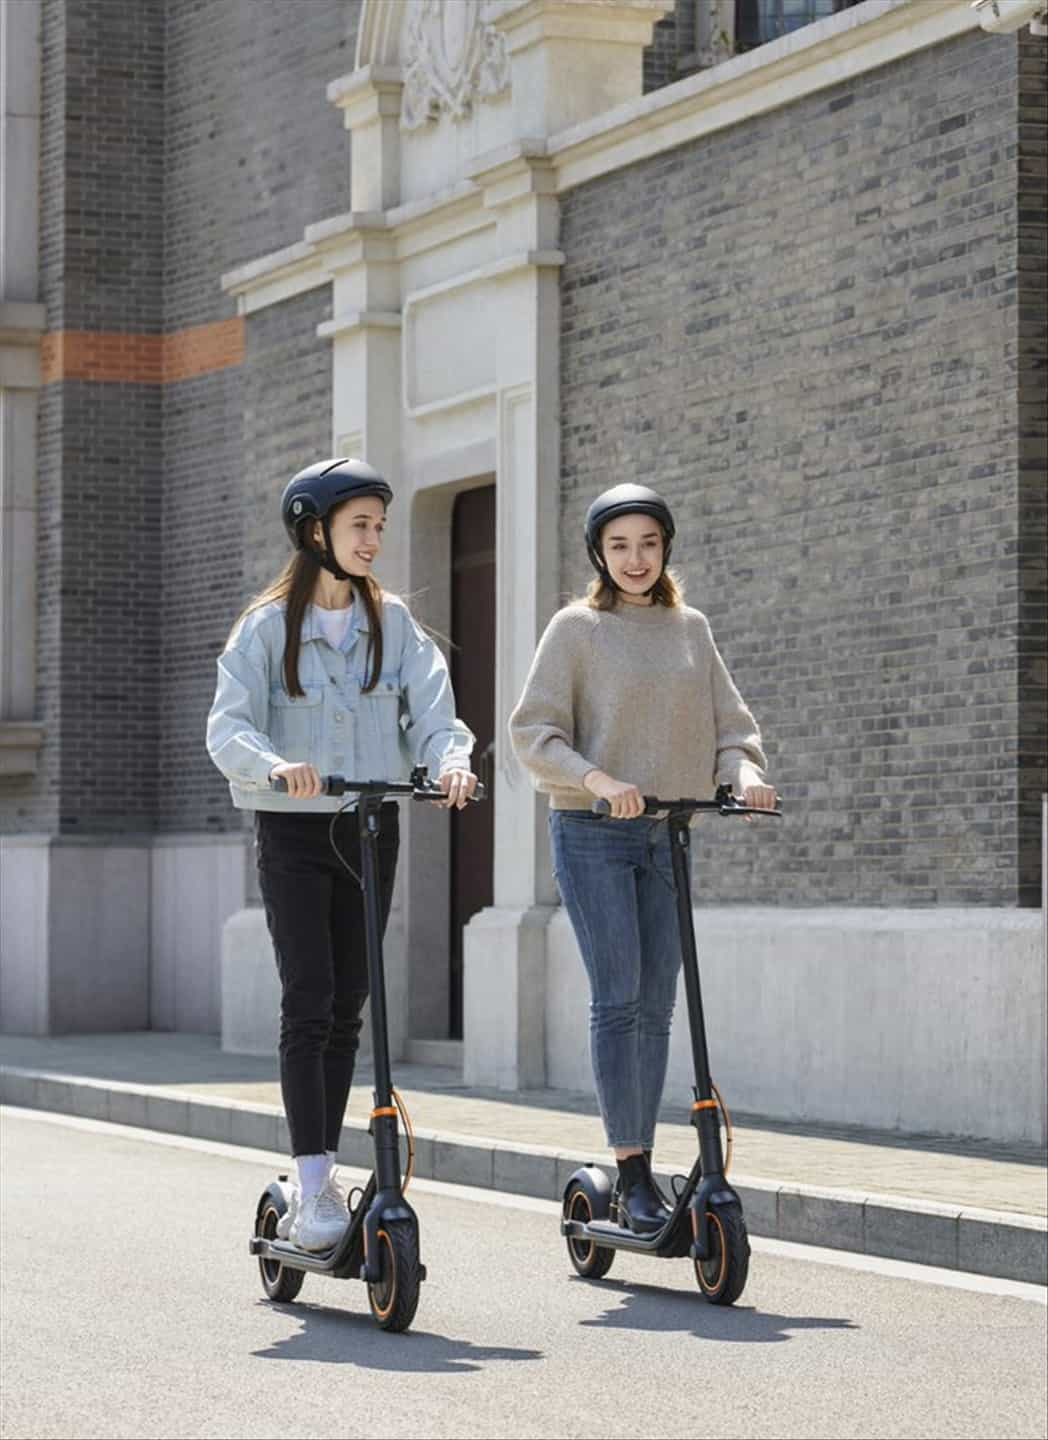 Four new electric scooters from Segway-Ninebot are here